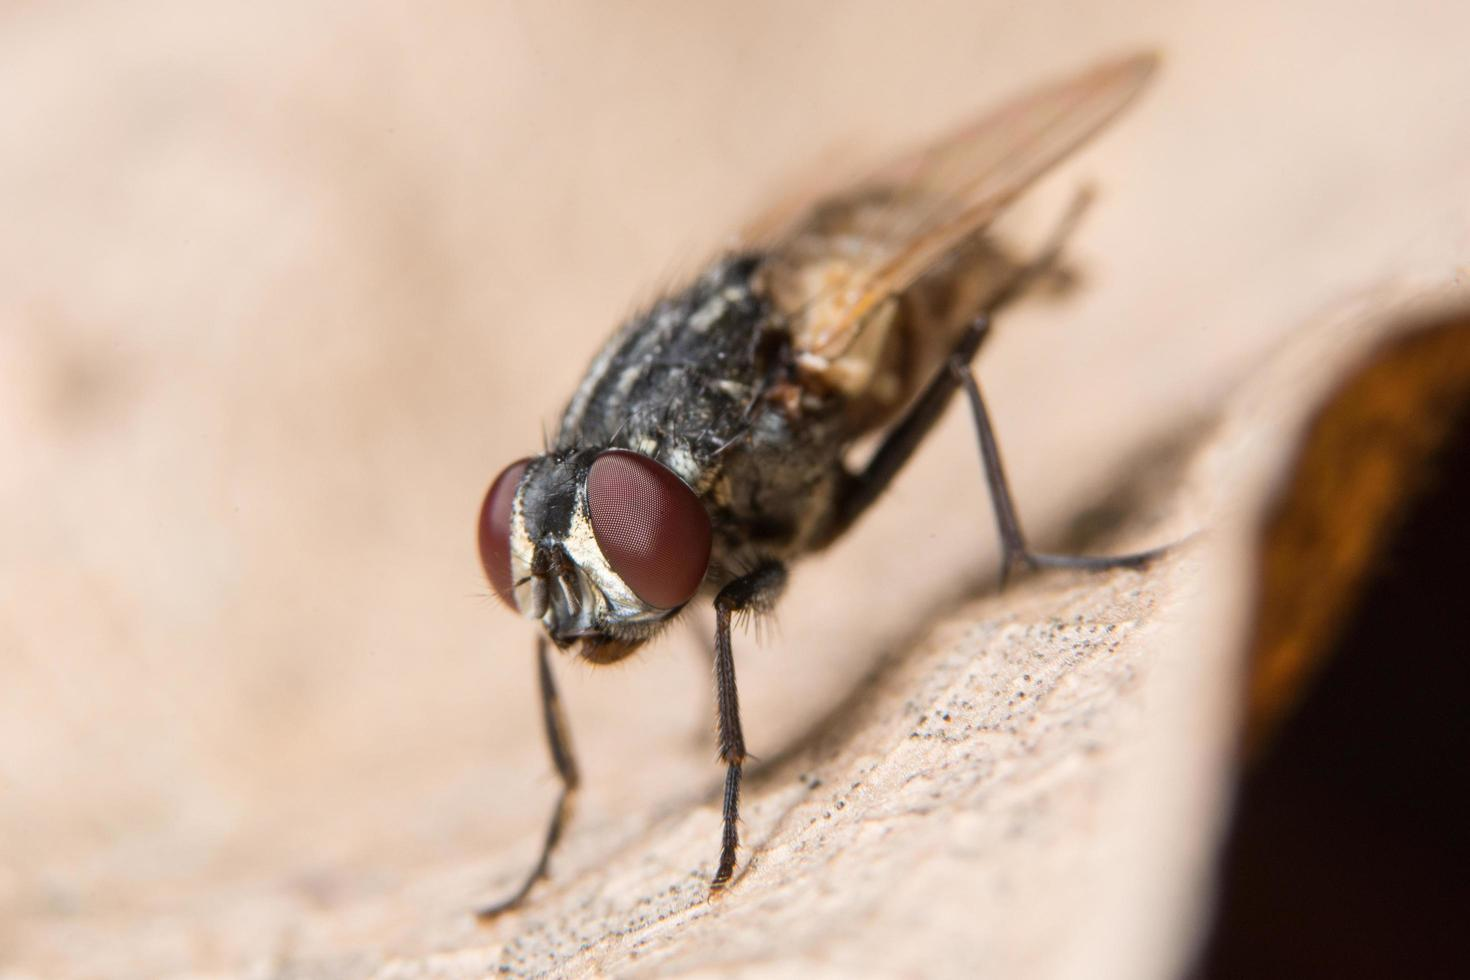 Fly on a dry leaf photo